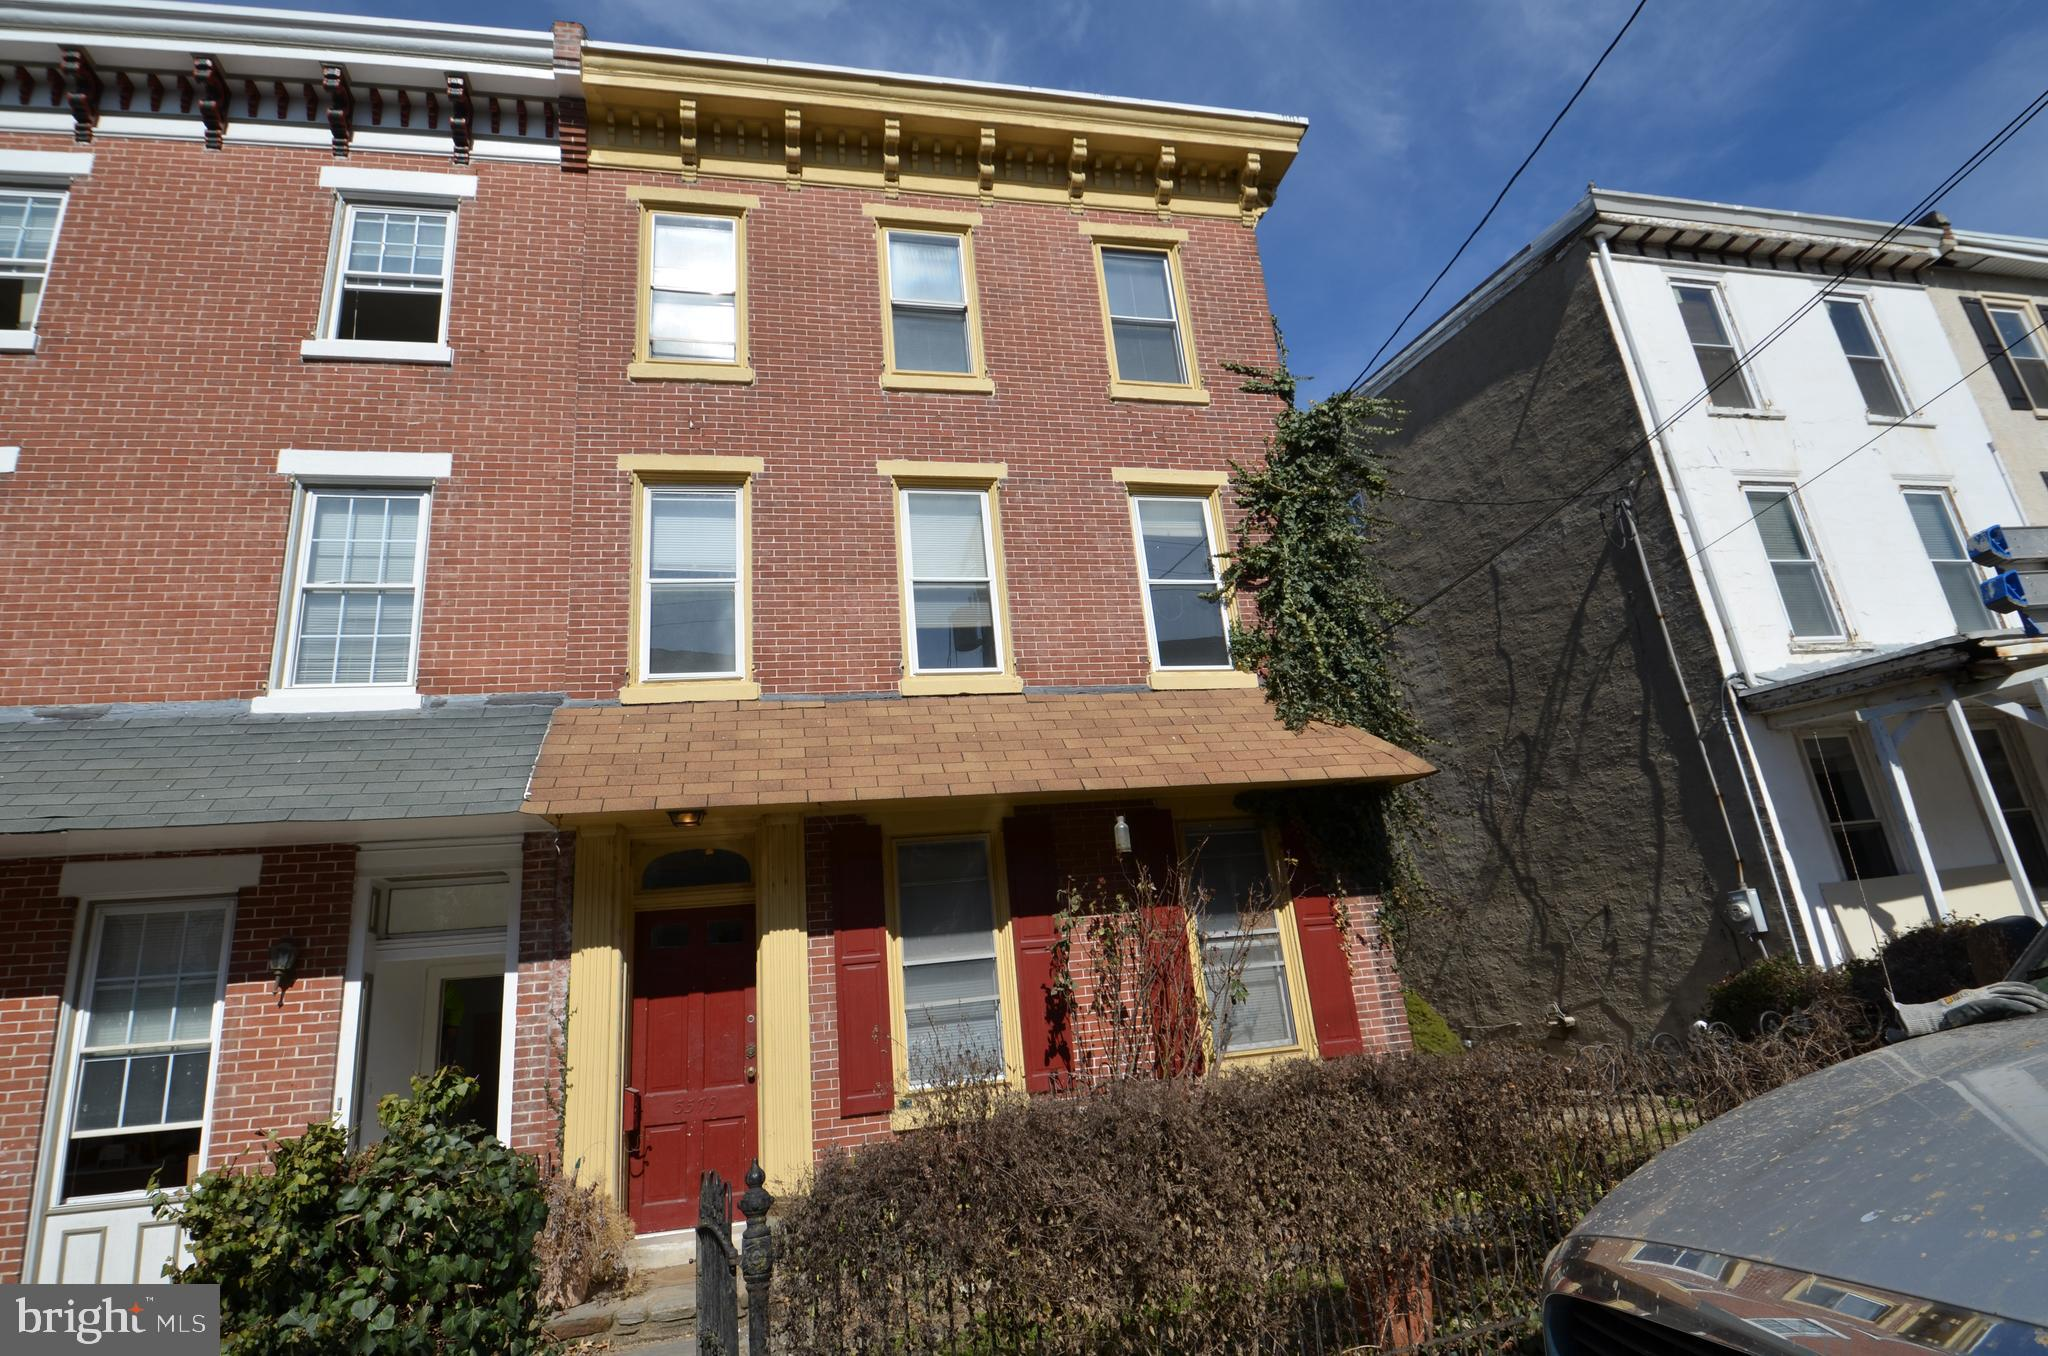 3579 Indian Queen Lane, Philadelphia, PA 19129